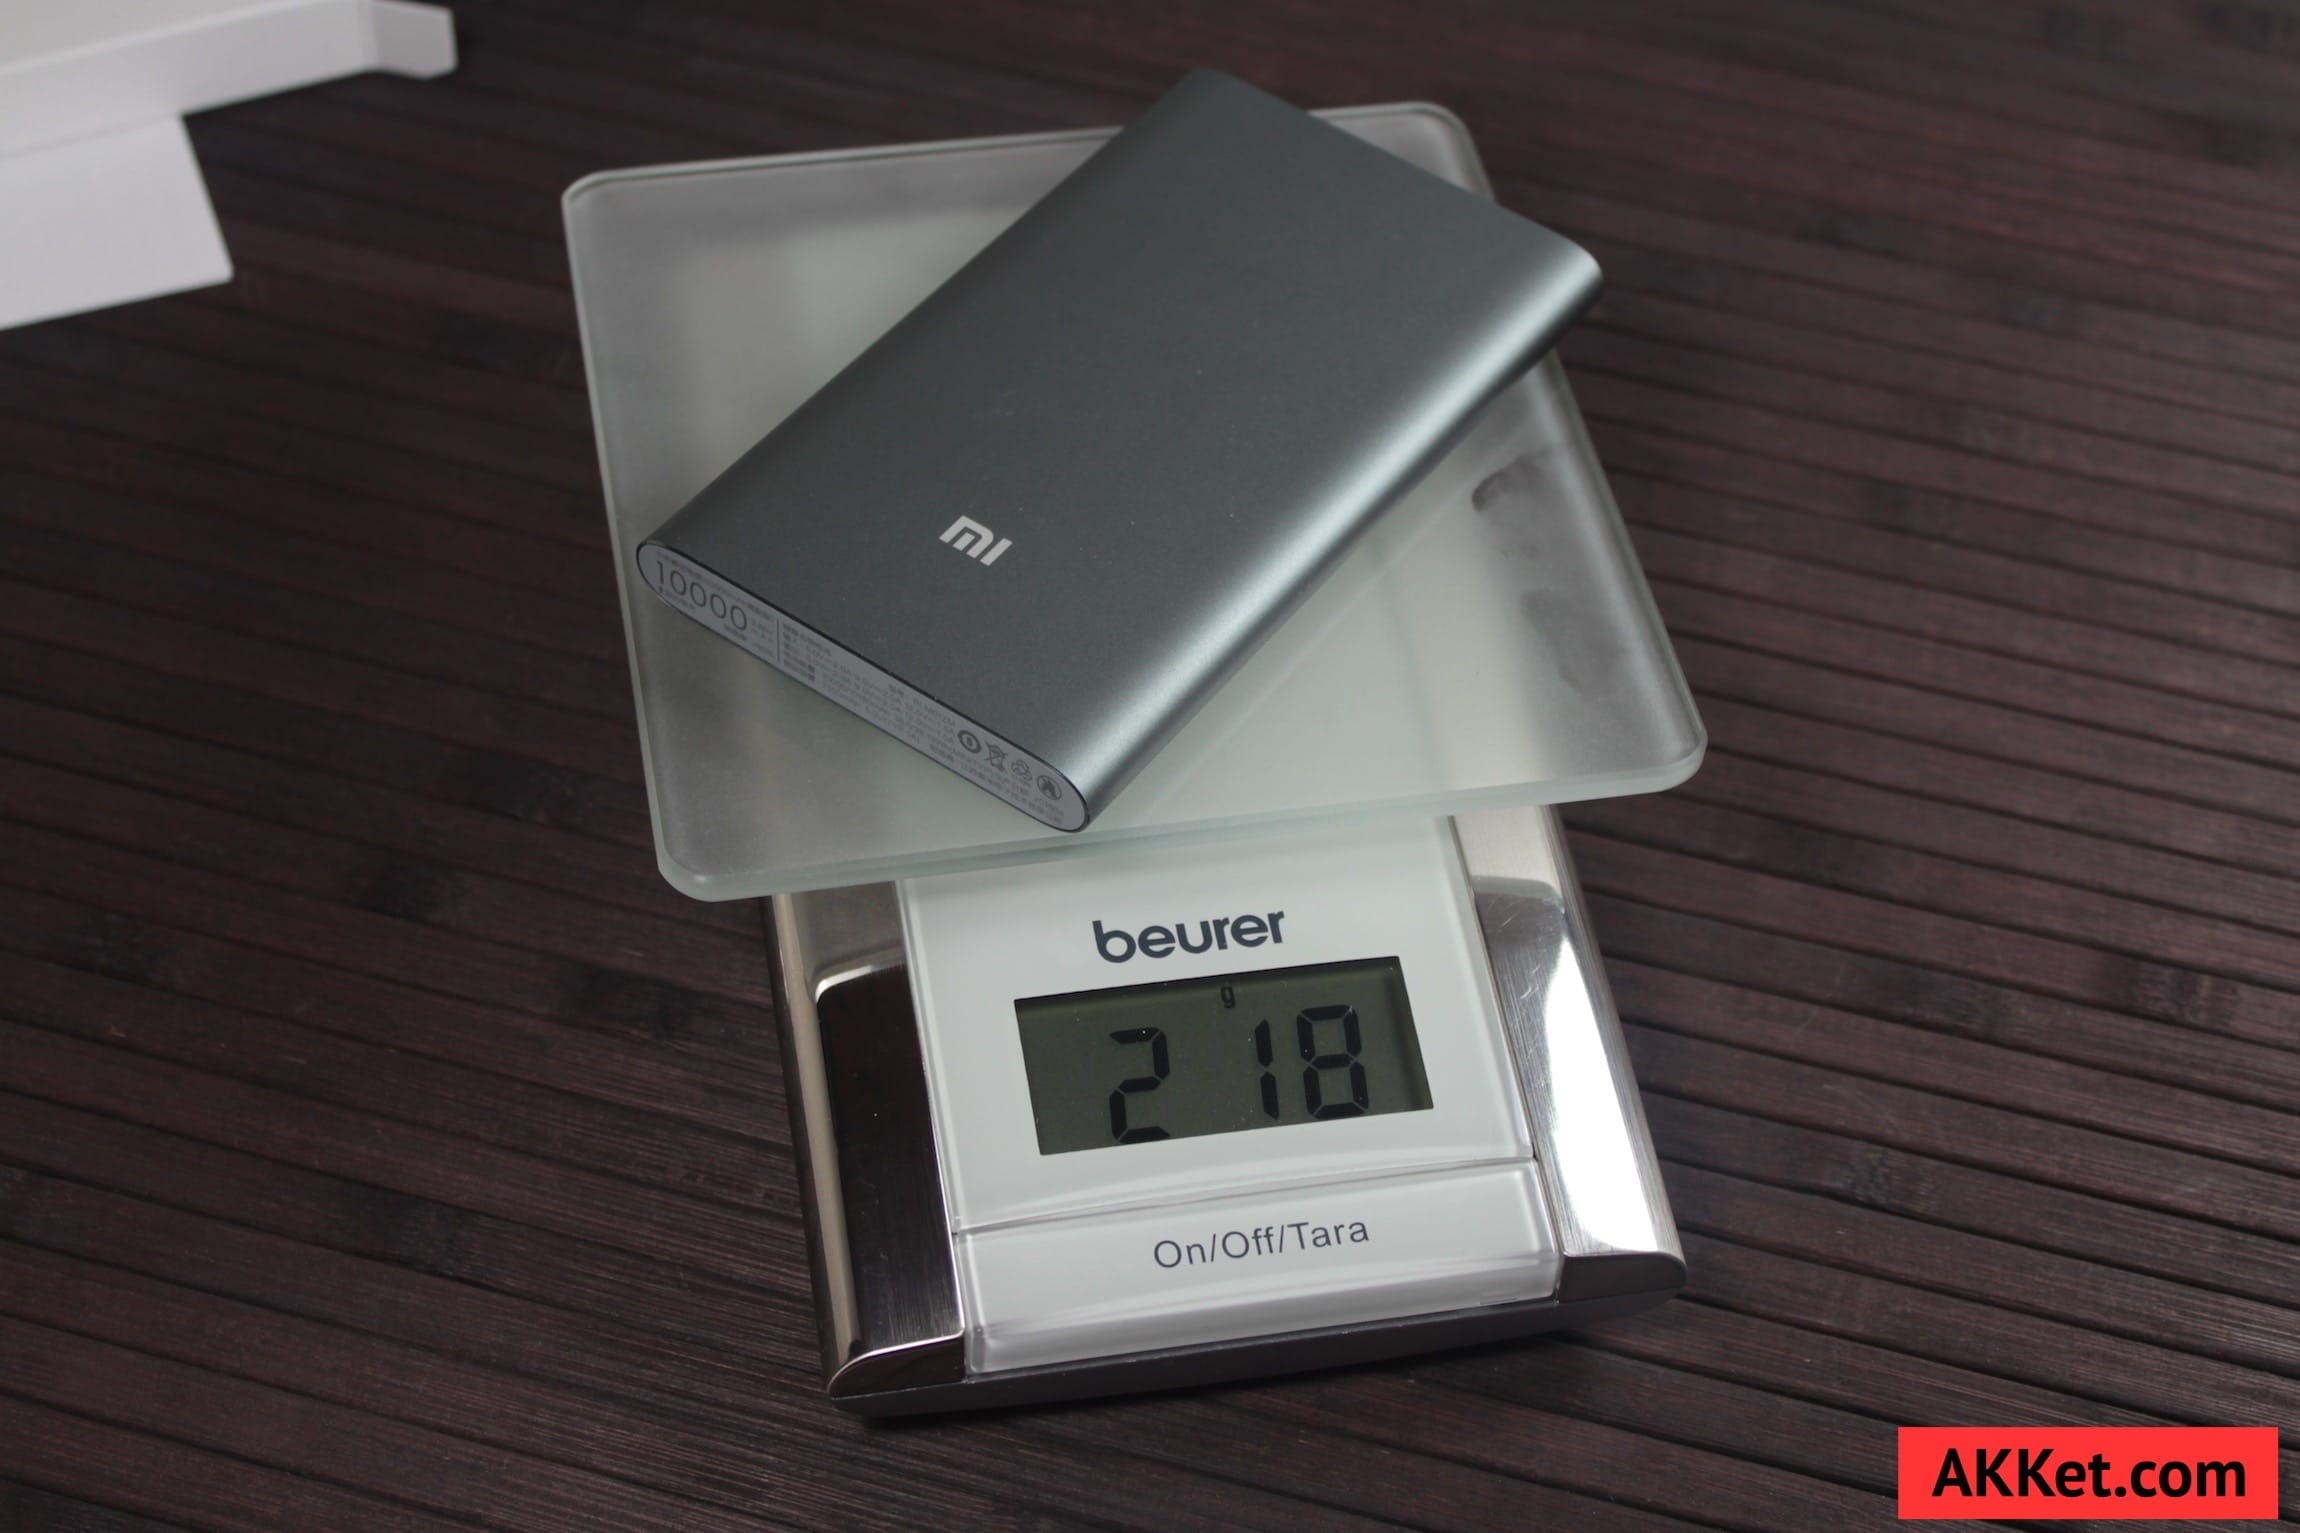 Xiaomi Mi Power Bank 10000 mAh Review iPhone SE AKKet.com 17